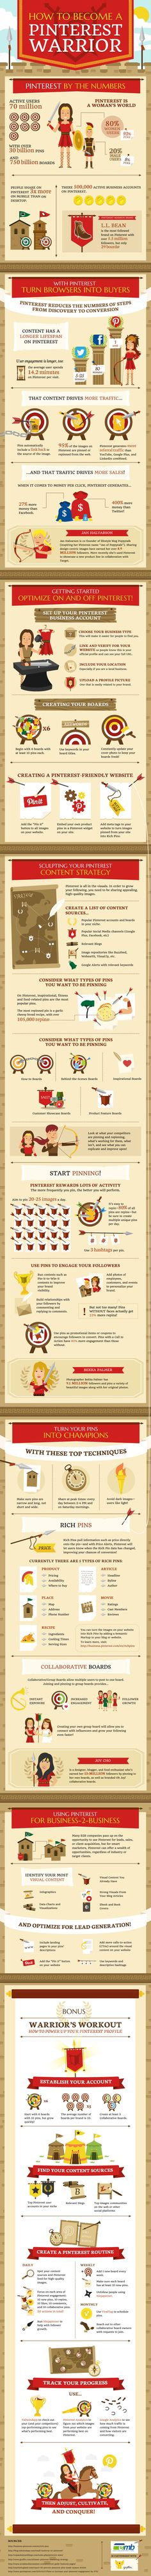 Infographic: How to Become a Pinterest Warrior